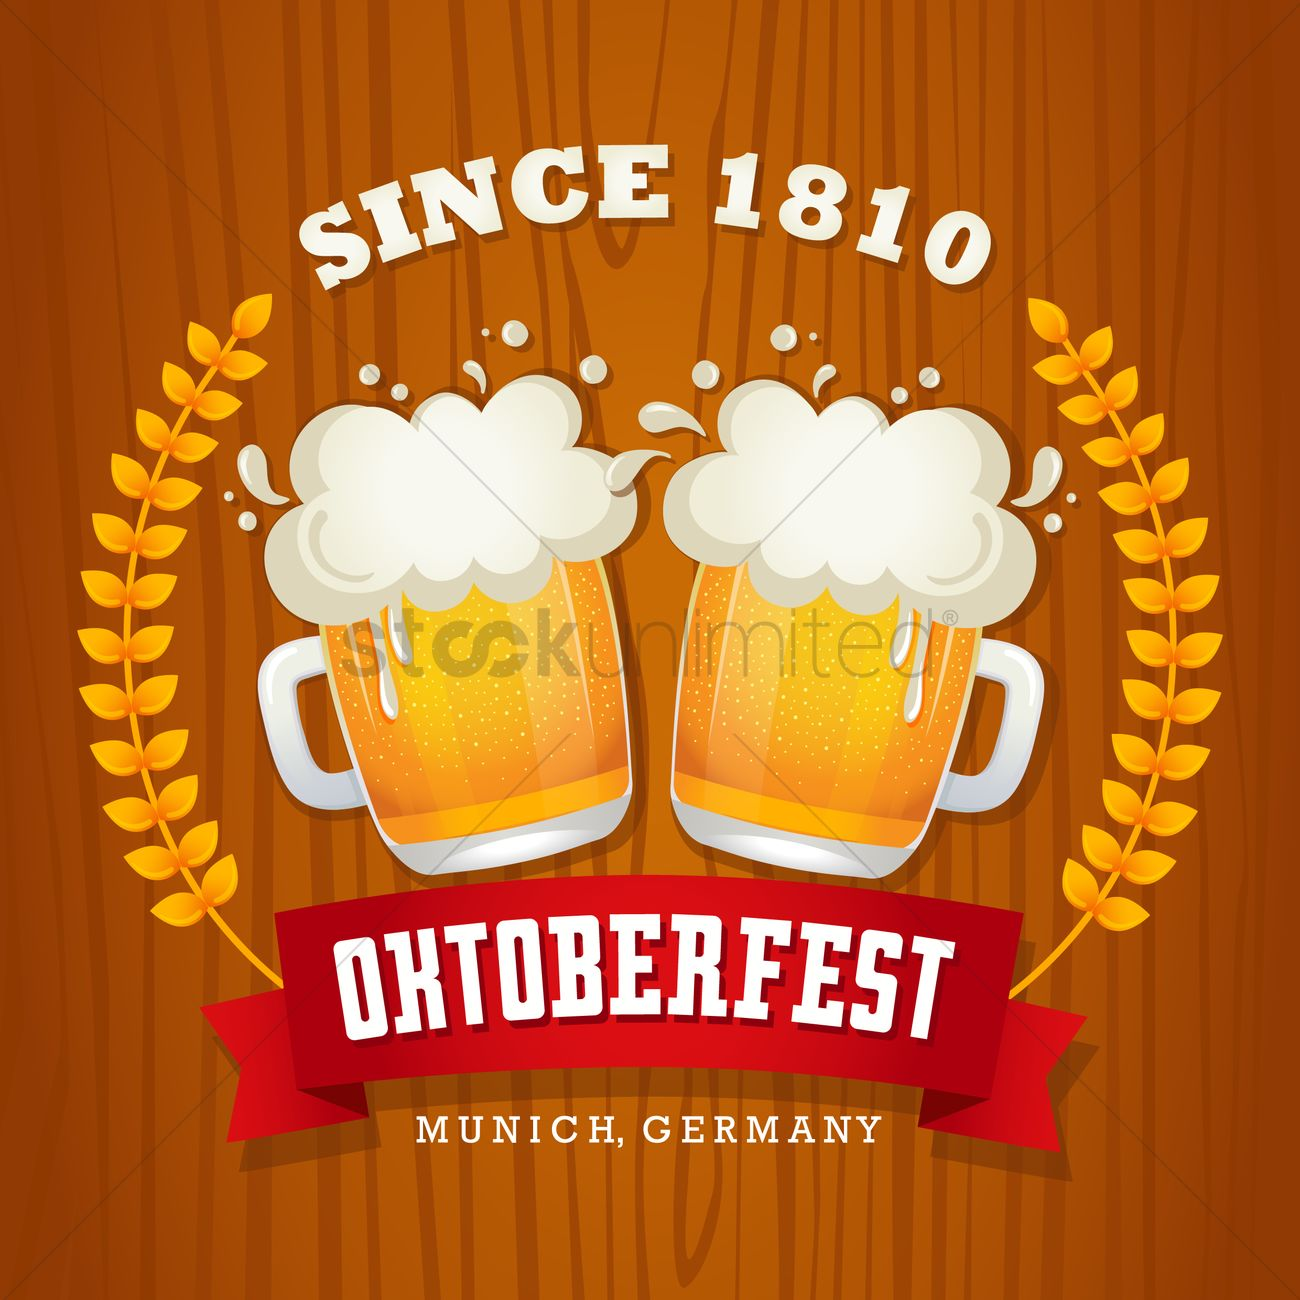 Oktoberfest wallpaper Vector Image - 1480678 | StockUnlimited